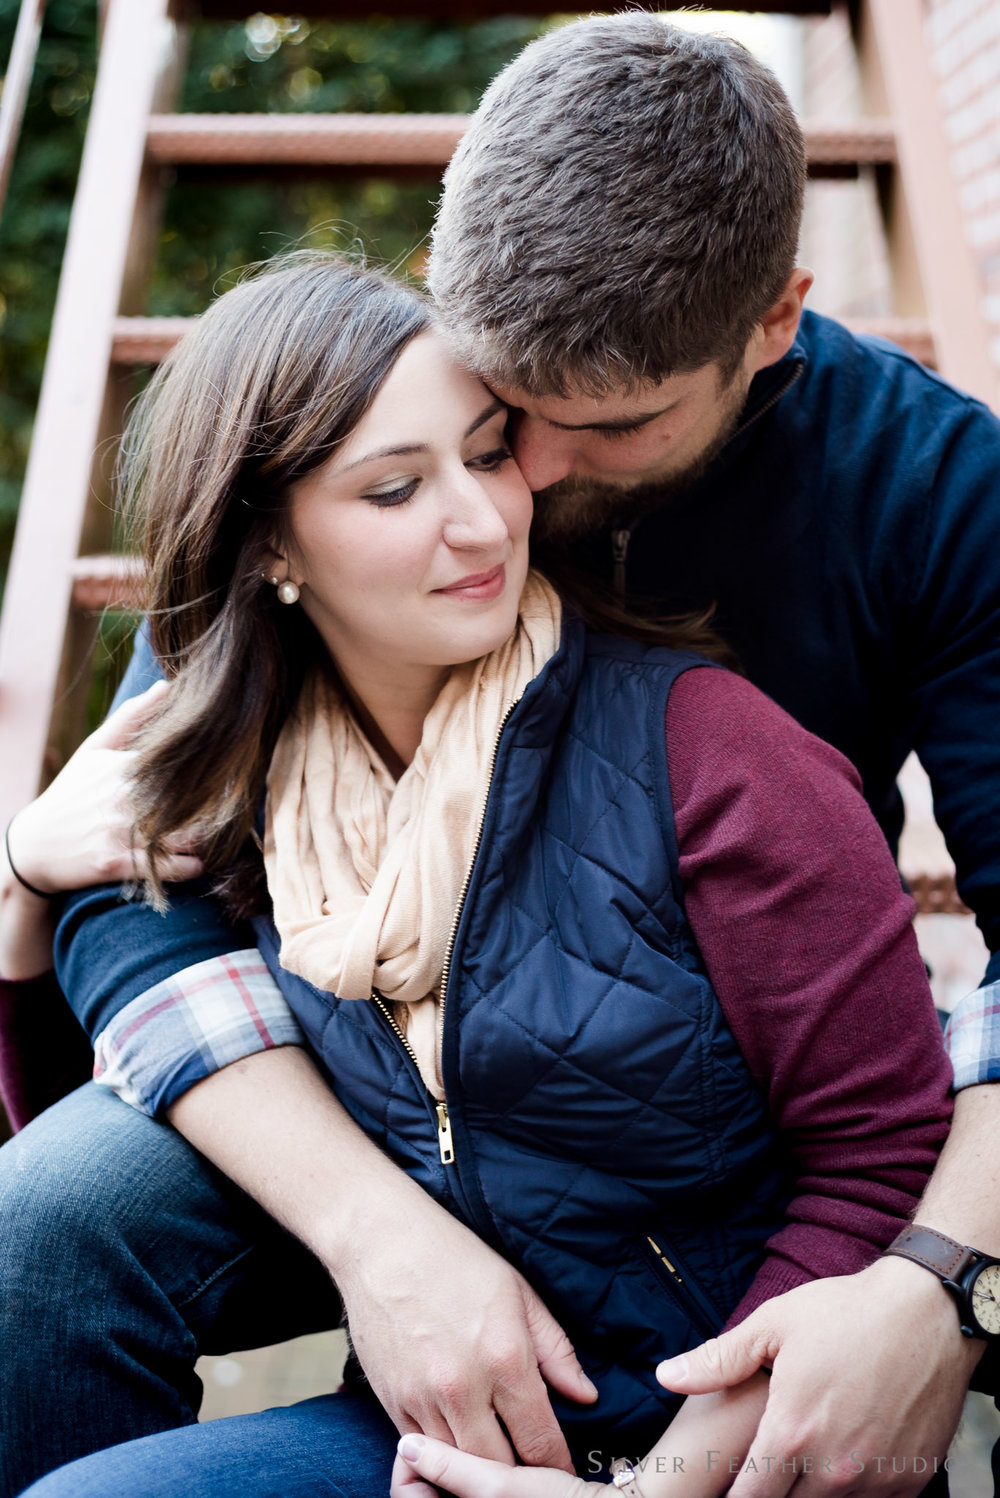 Old Salem engagement session by Burlington lifestyle photographer, Silver Feather Studios